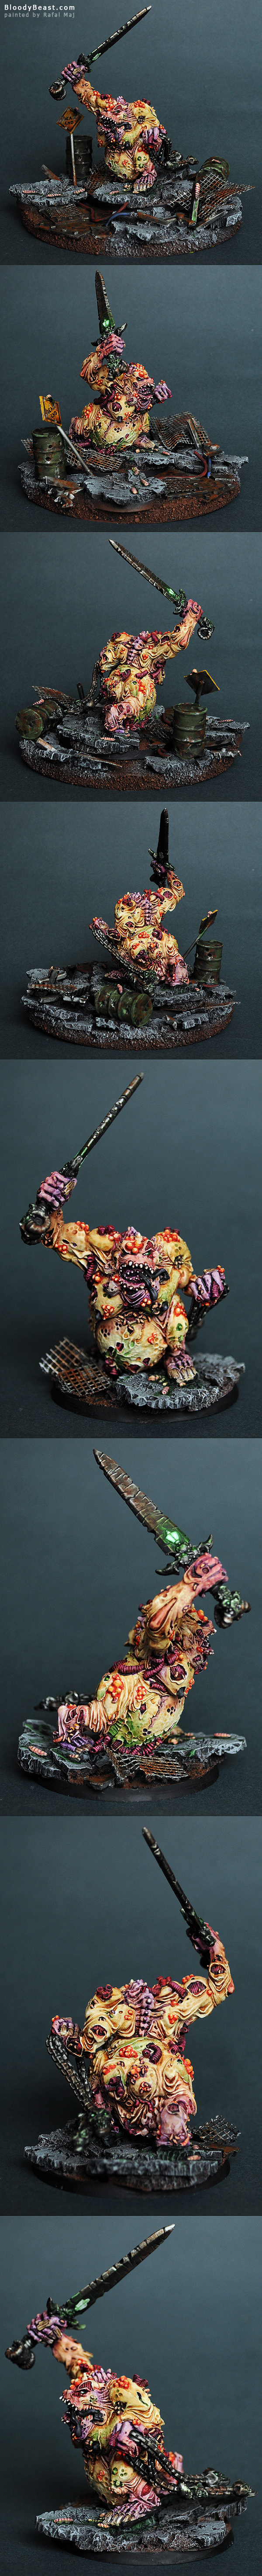 Great Unclean One painted by Rafal Maj (BloodyBeast.com)